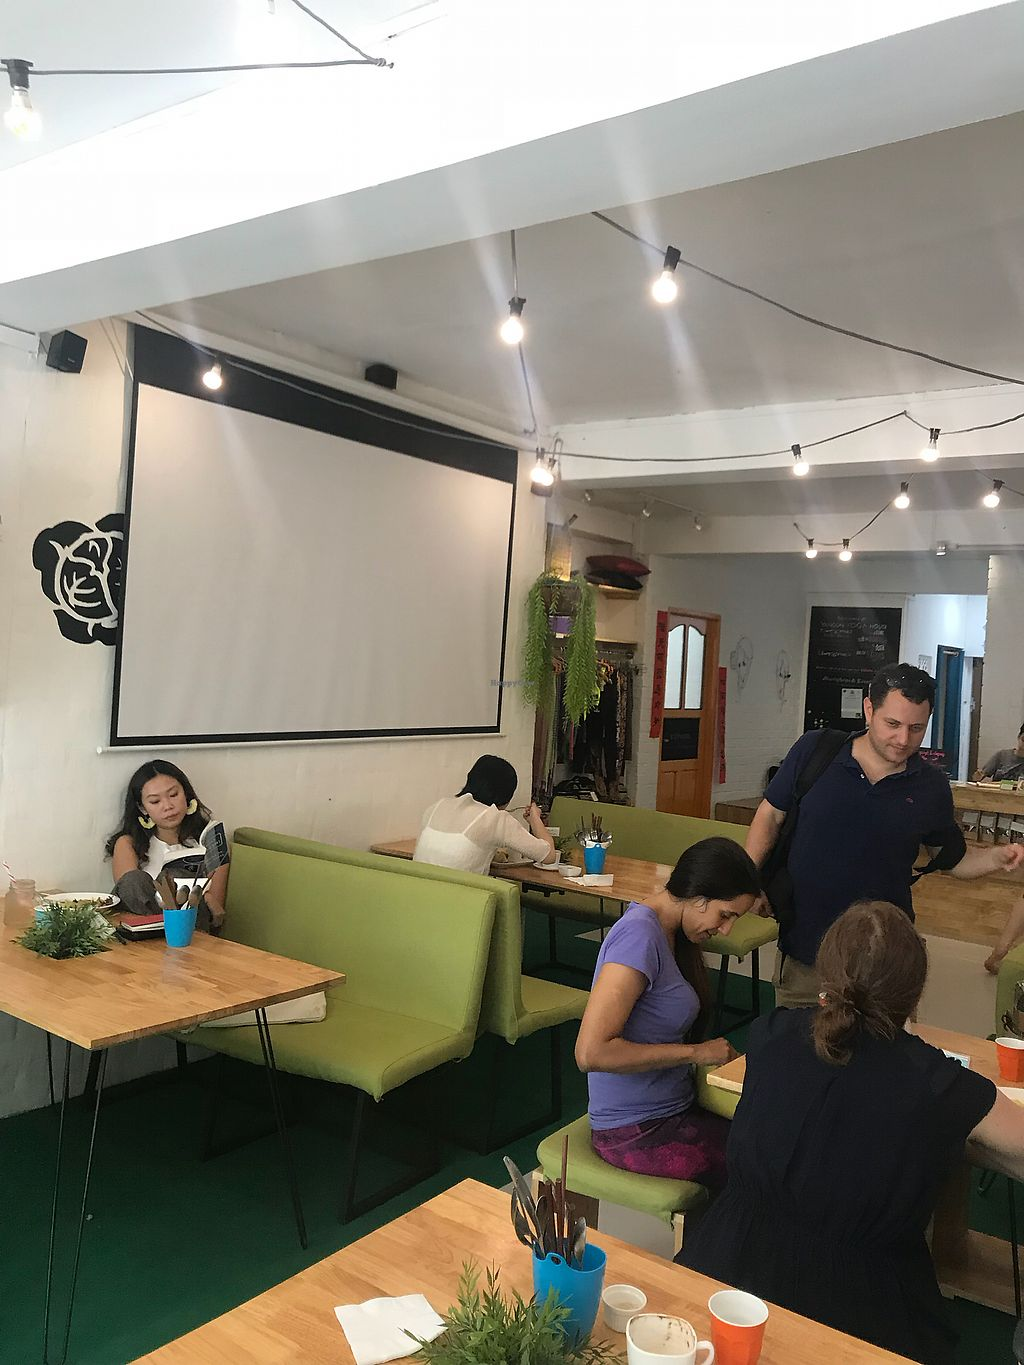 """Photo of Nourish Cafe  by <a href=""""/members/profile/alexita119"""">alexita119</a> <br/>Lounging after/before yoga class next door, beautiful and clean! <br/> March 4, 2018  - <a href='/contact/abuse/image/82280/366496'>Report</a>"""